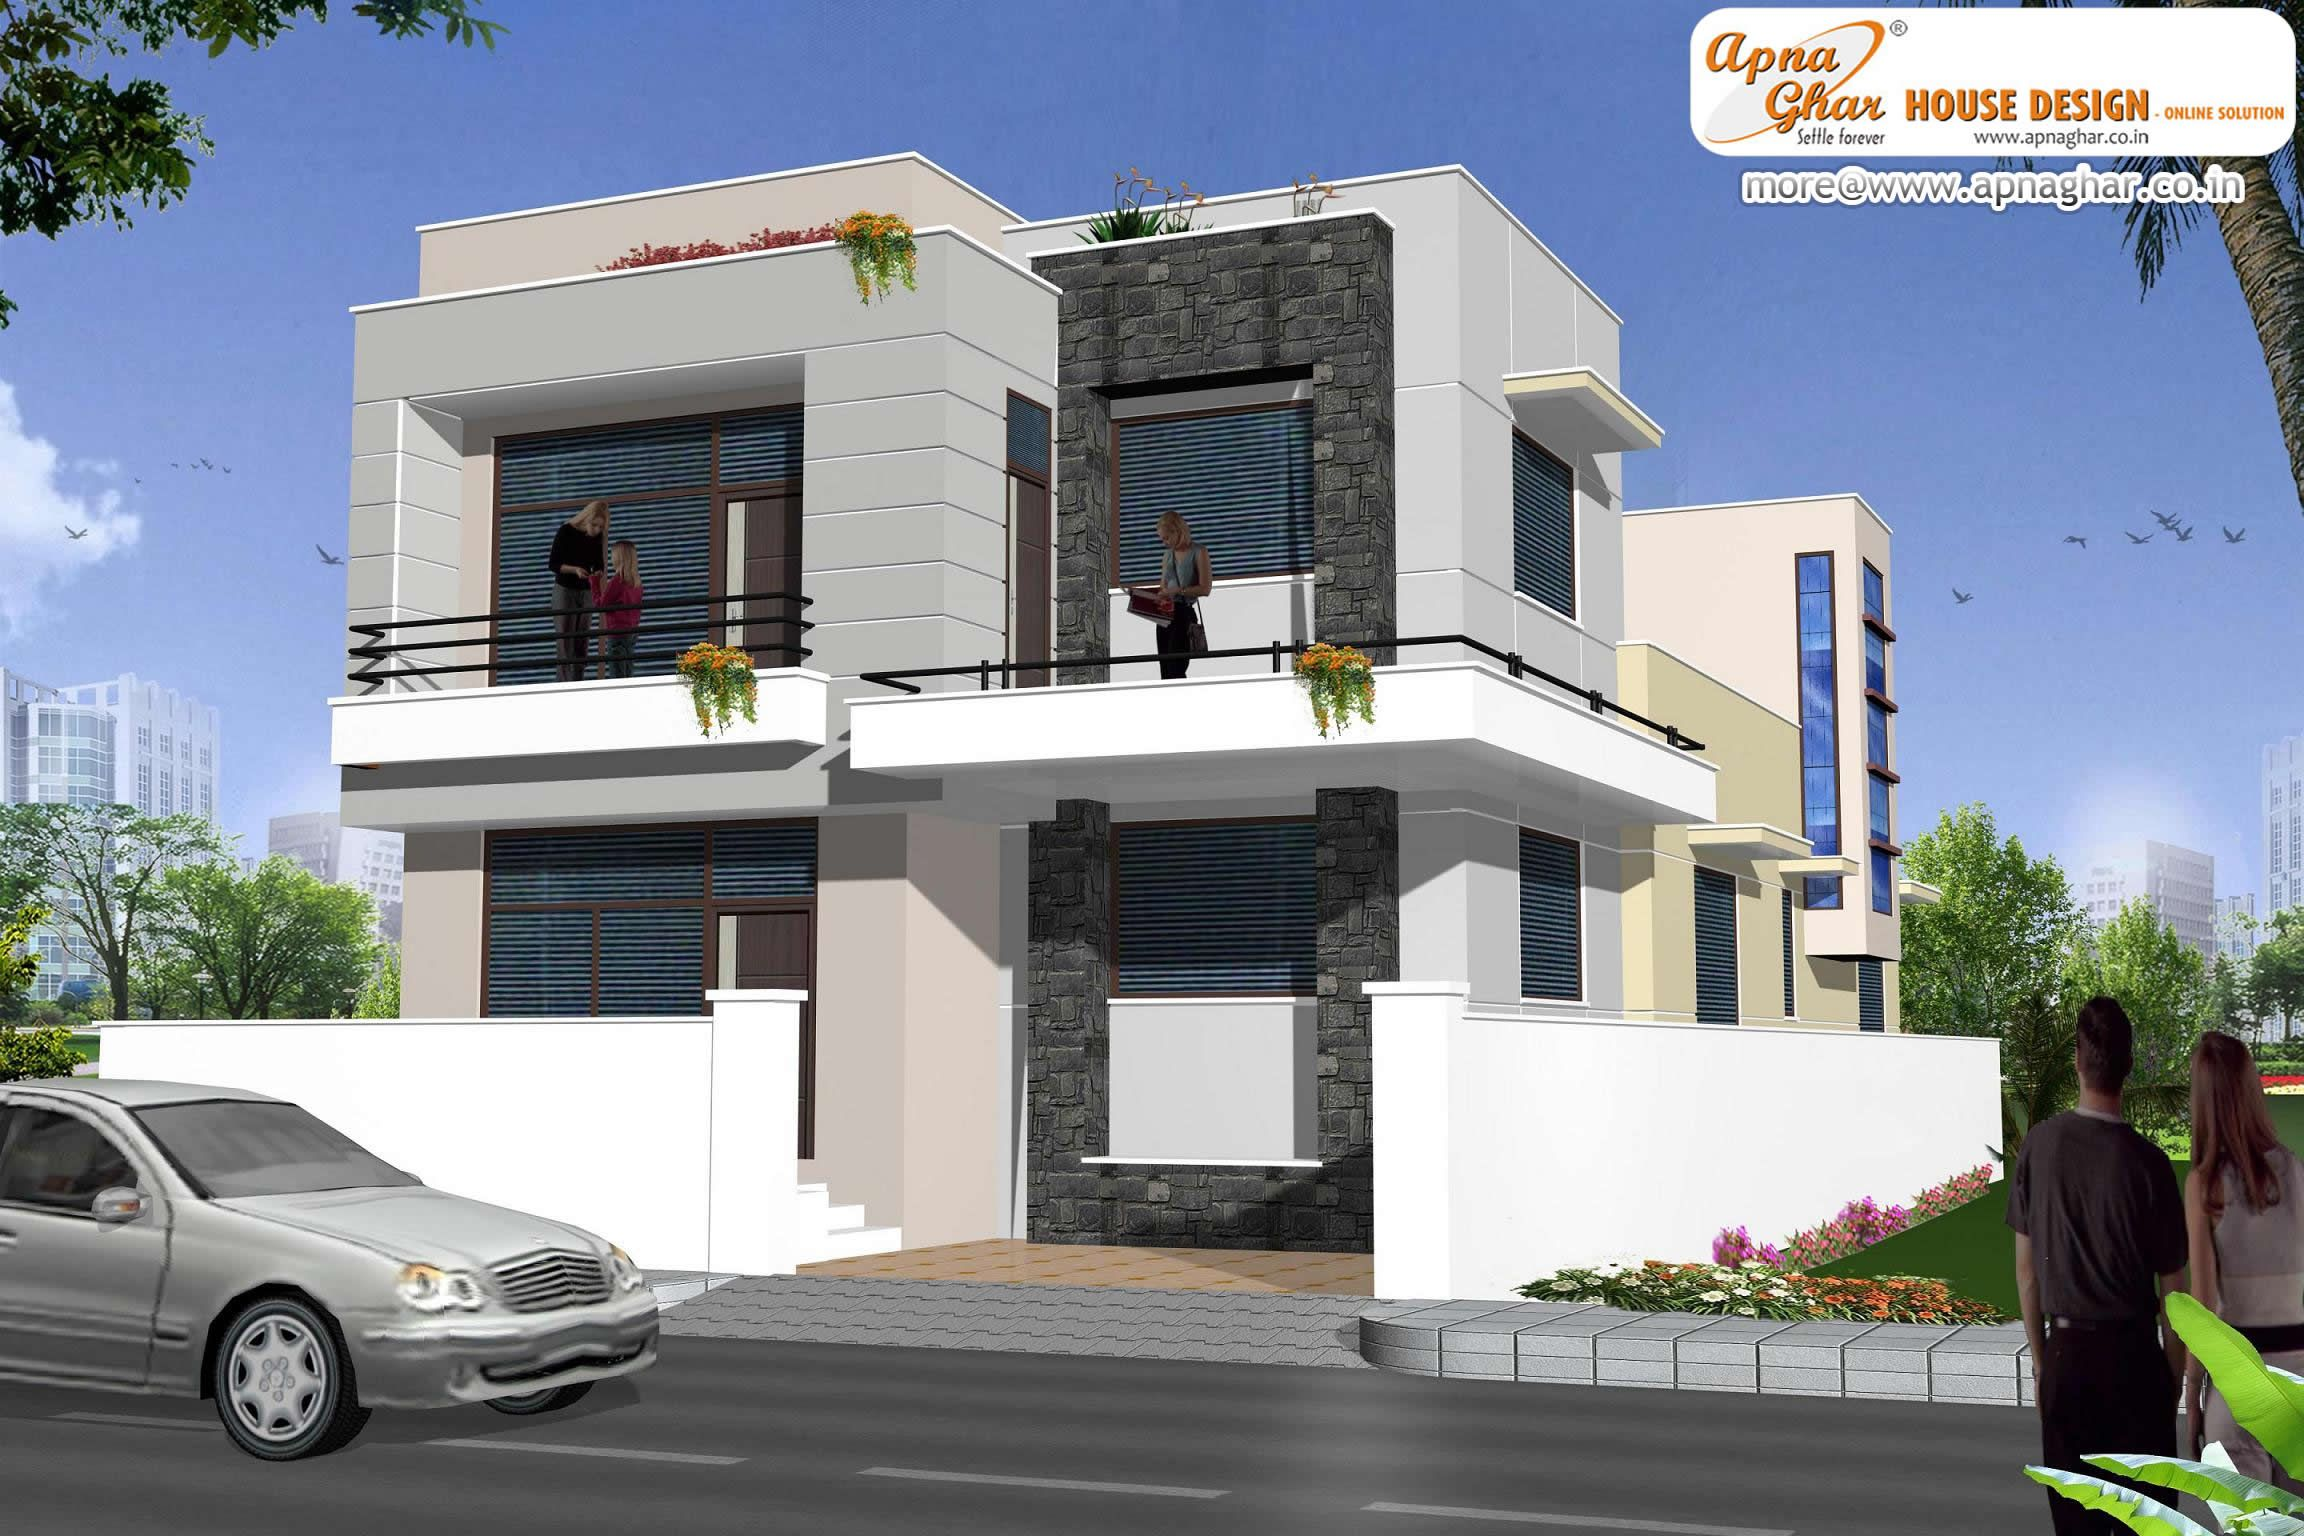 Modern duplex 2 floor house design area 198m2 9m x for Duplex designs india